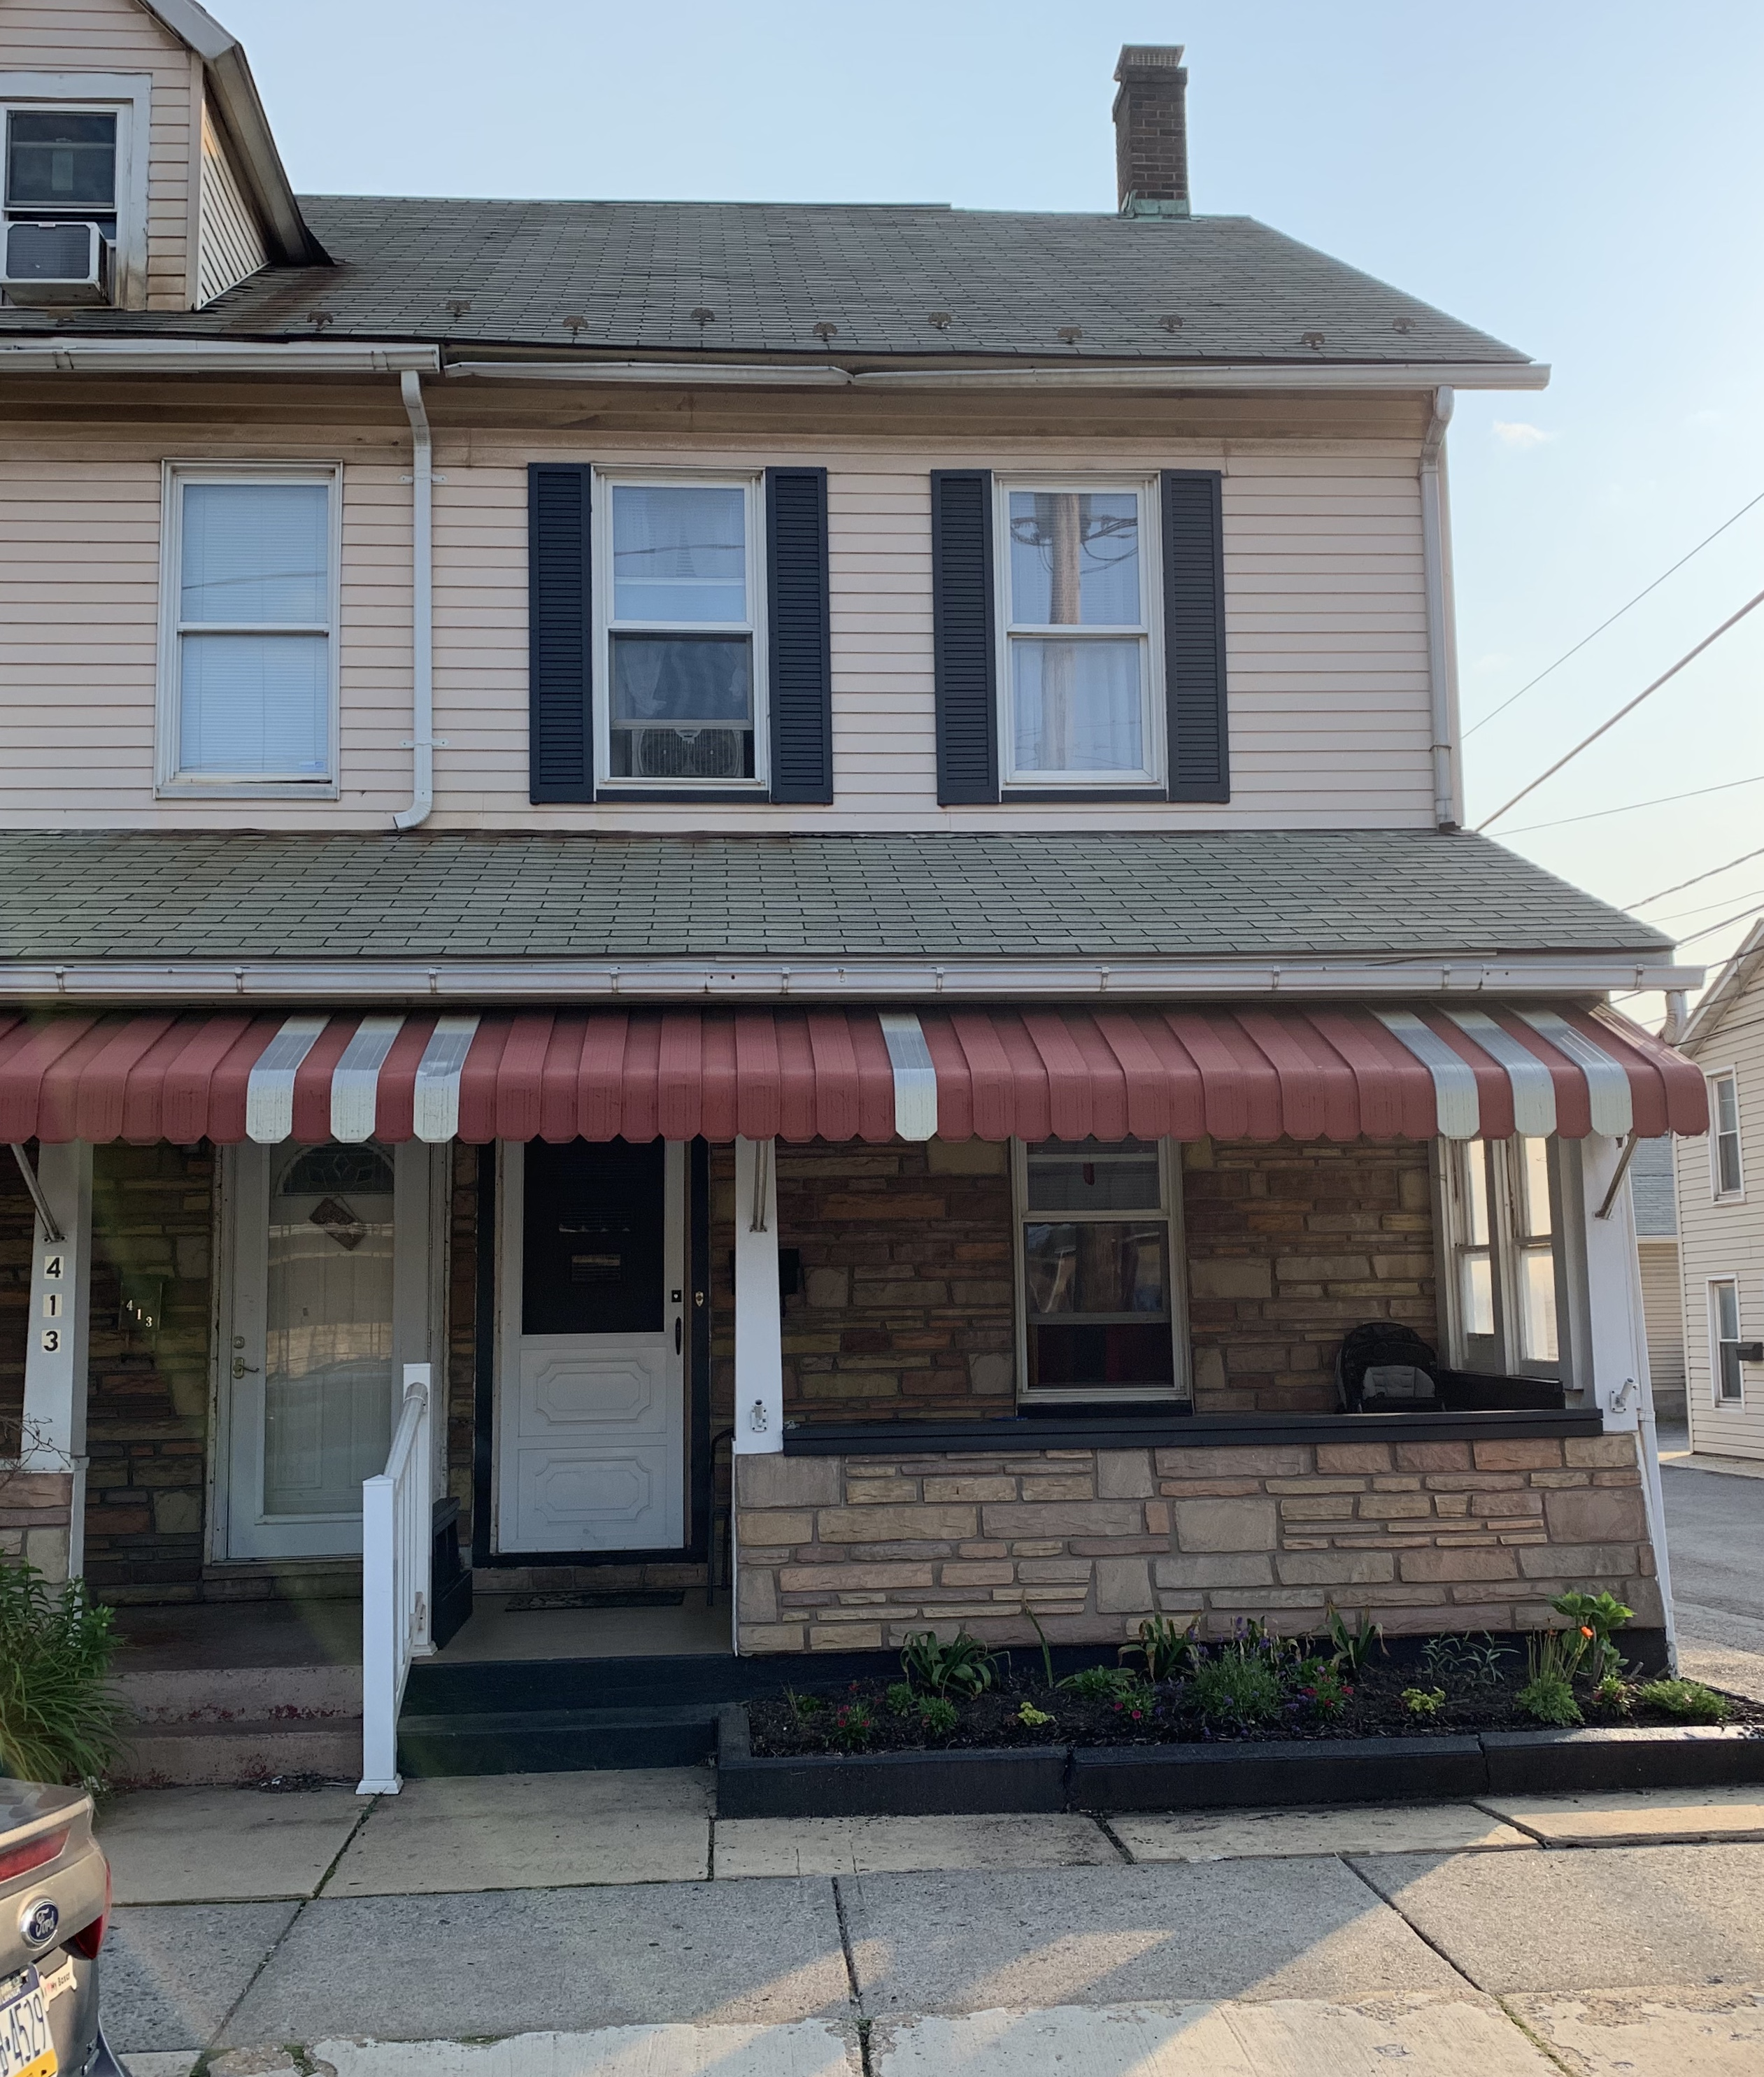 Palmerton – 3 Bedroom 1 Bath $89,000